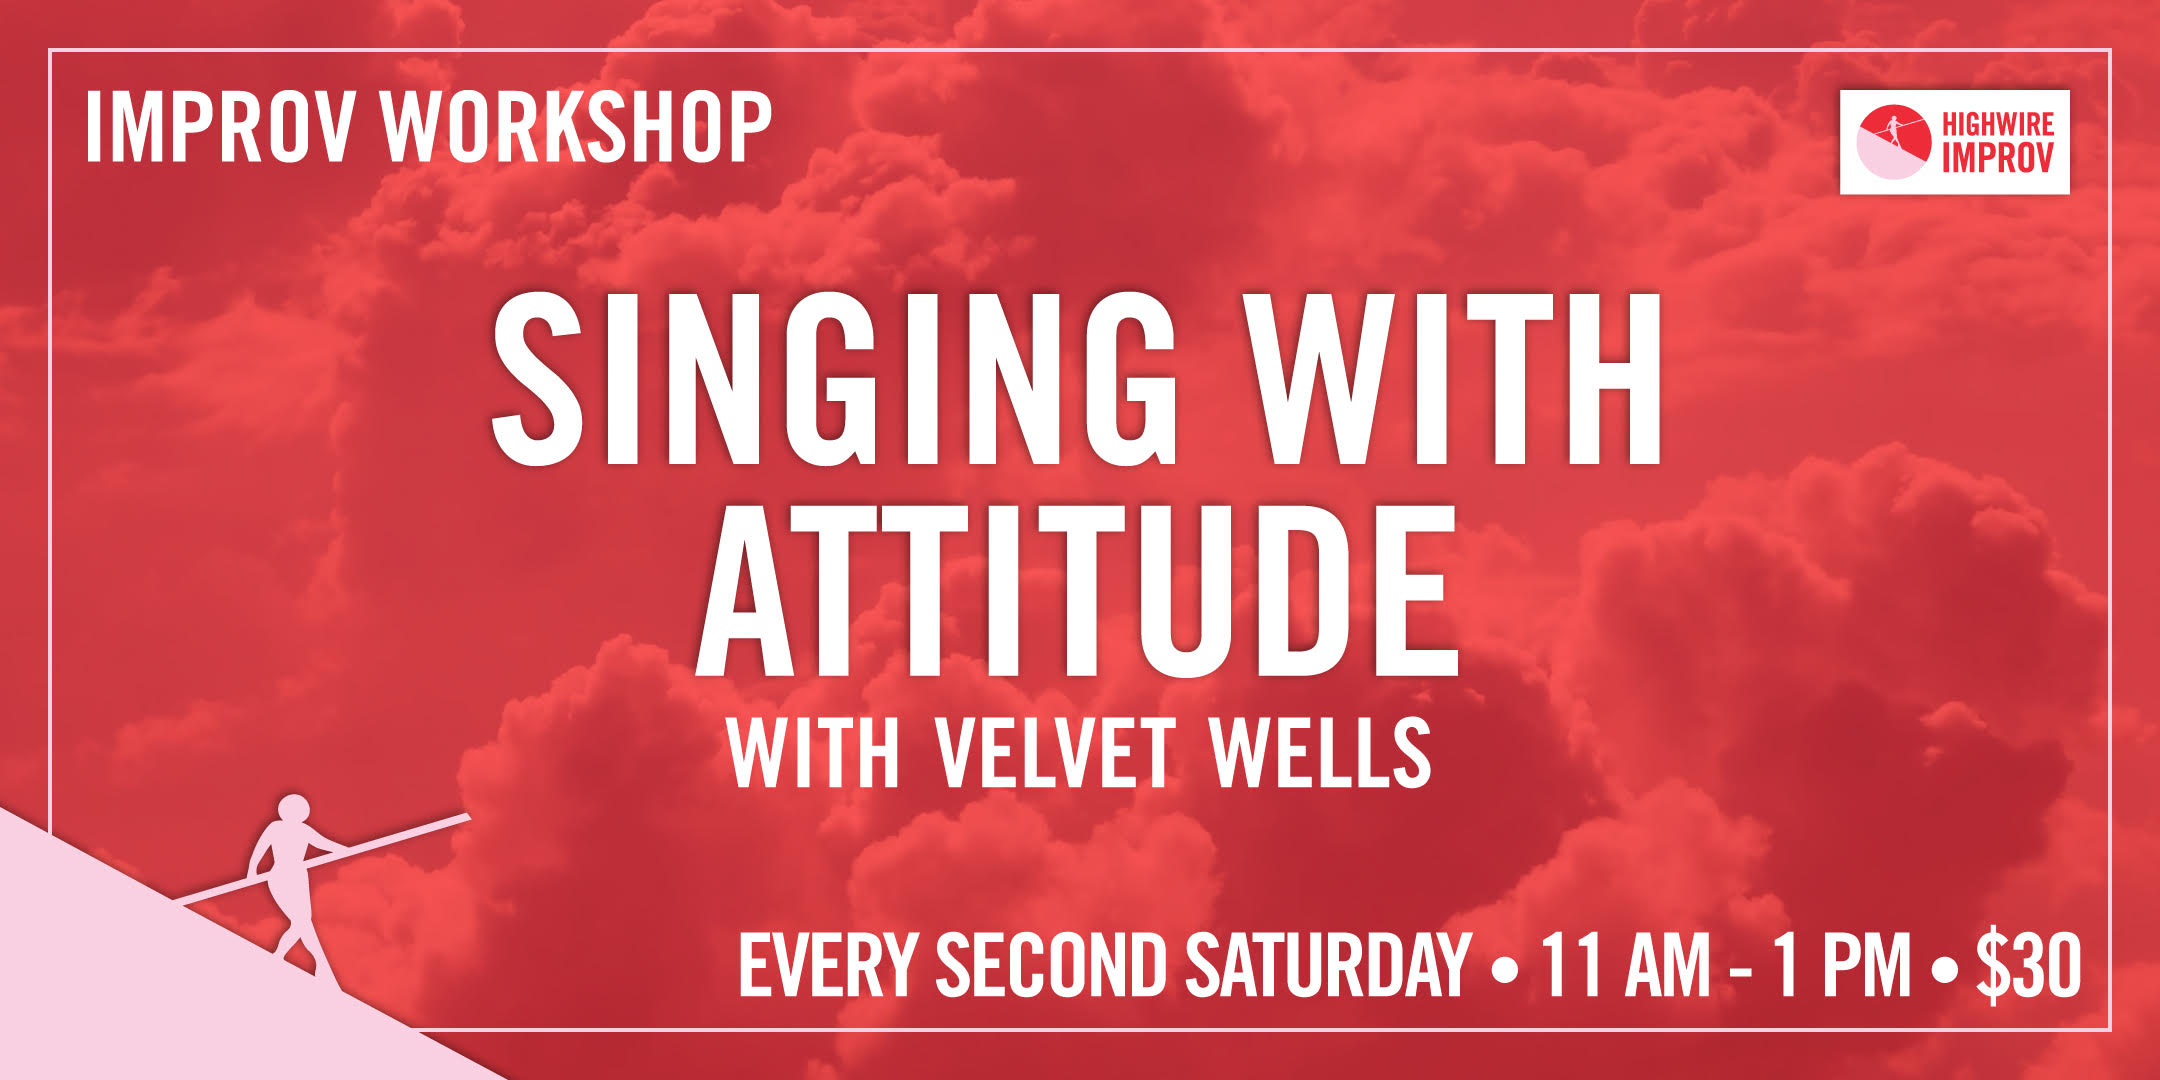 Singing with Attitude with Velvet Wells